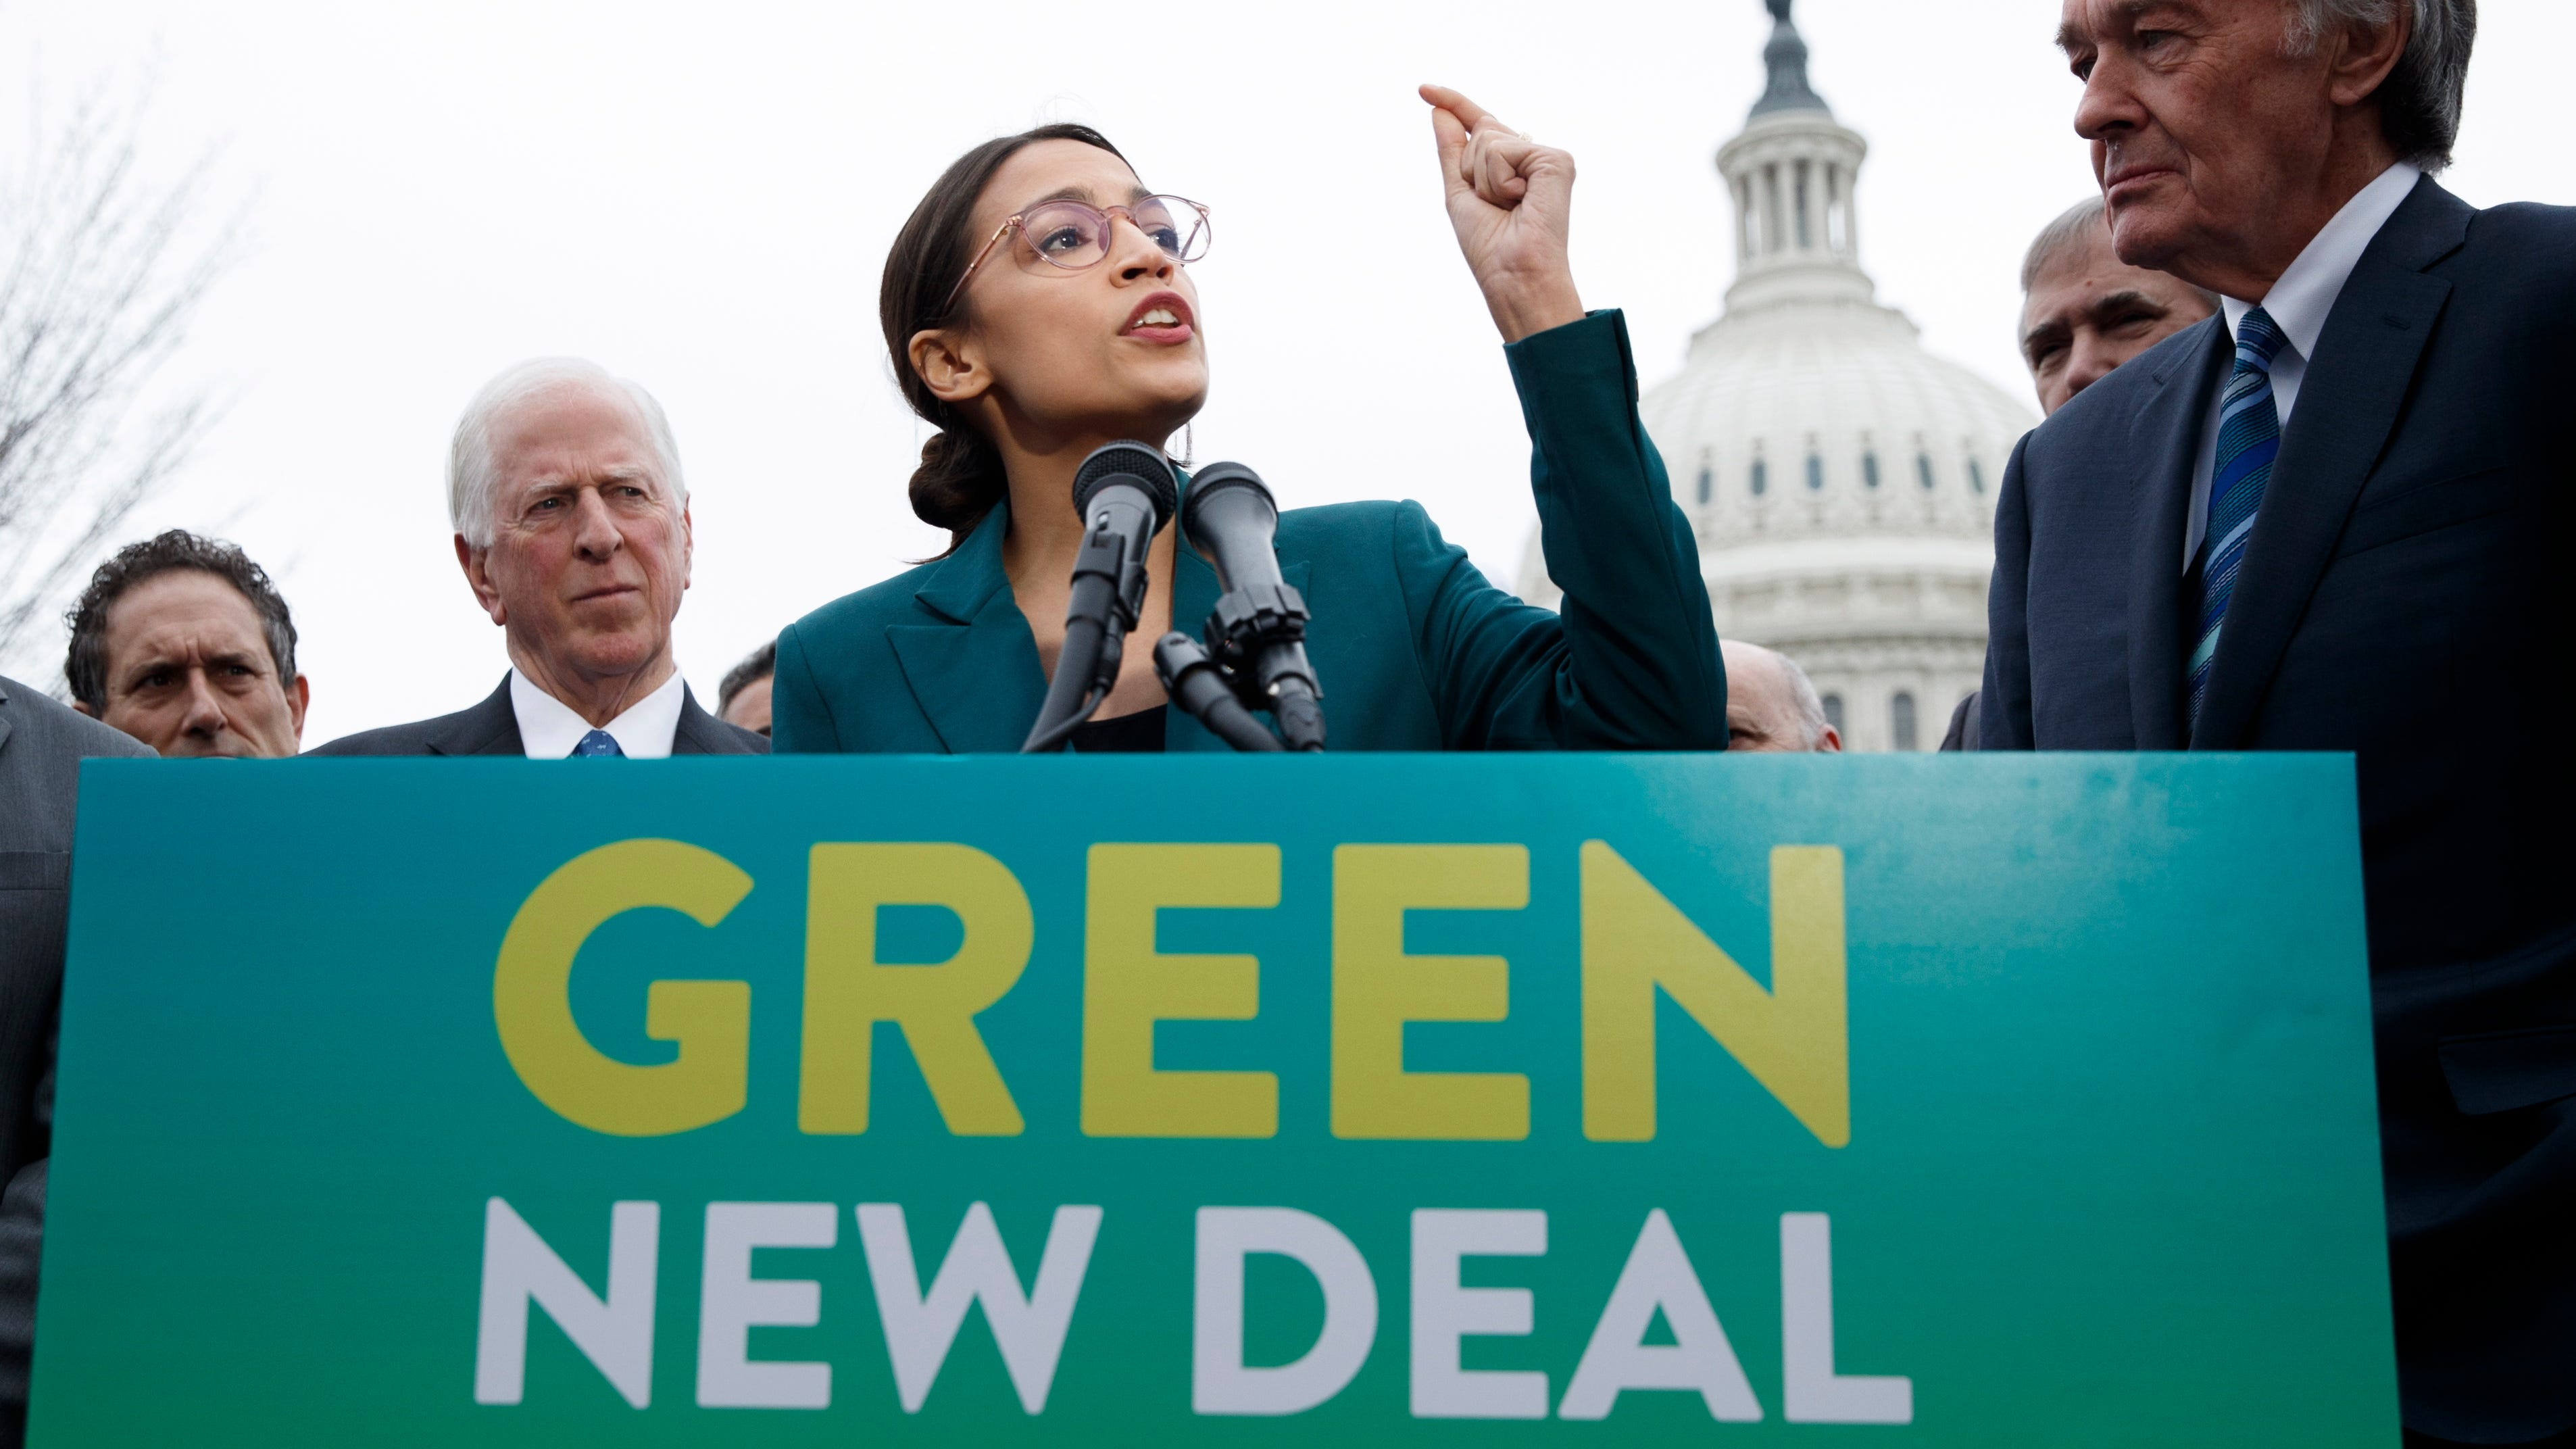 Green New Deal: Republicans talk up climate change plan – but not because they like it